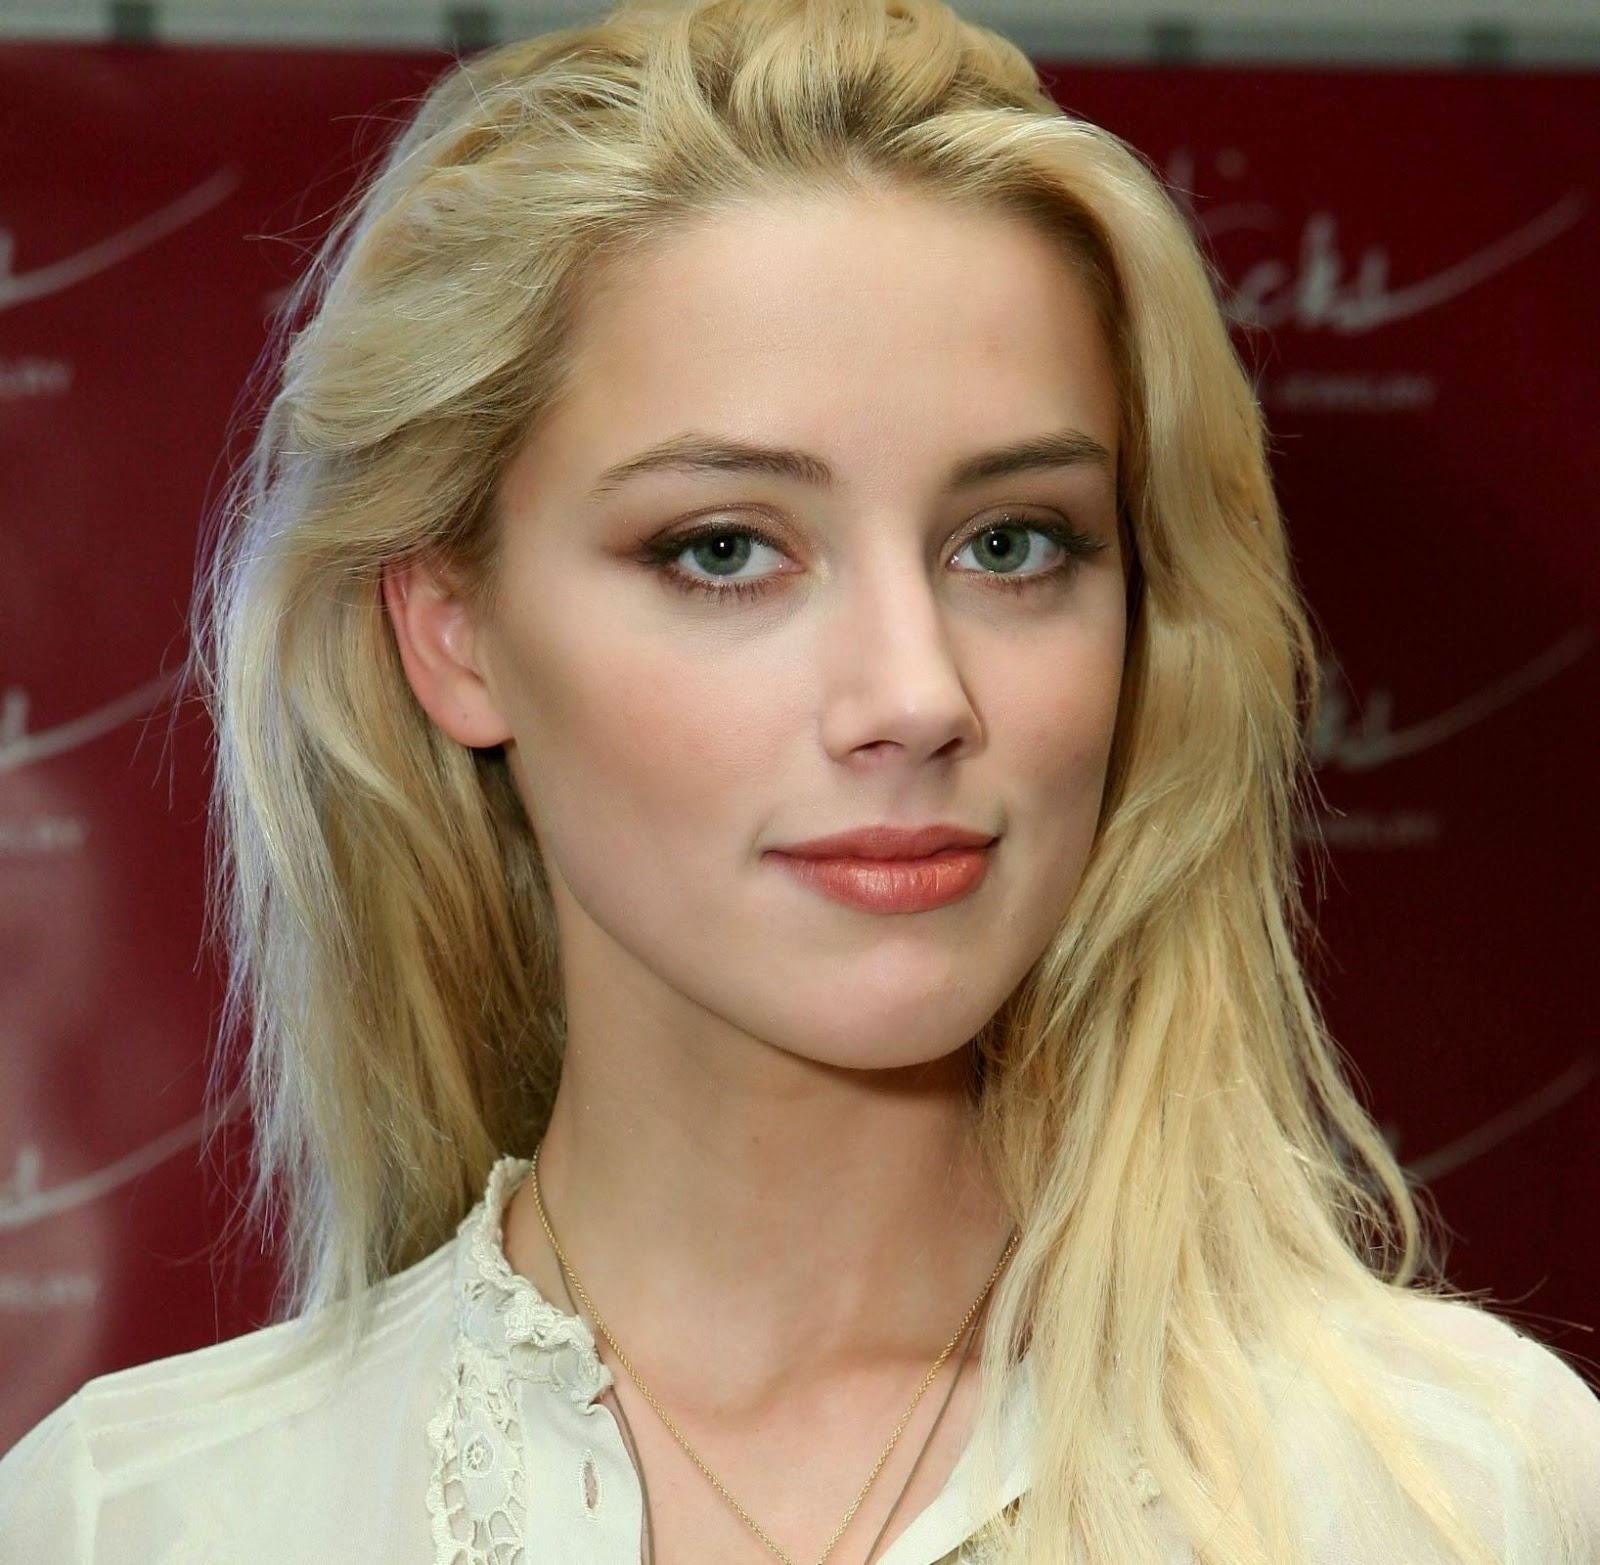 Free Download HD Wallpapers: Amber Heard HD Wallpapers